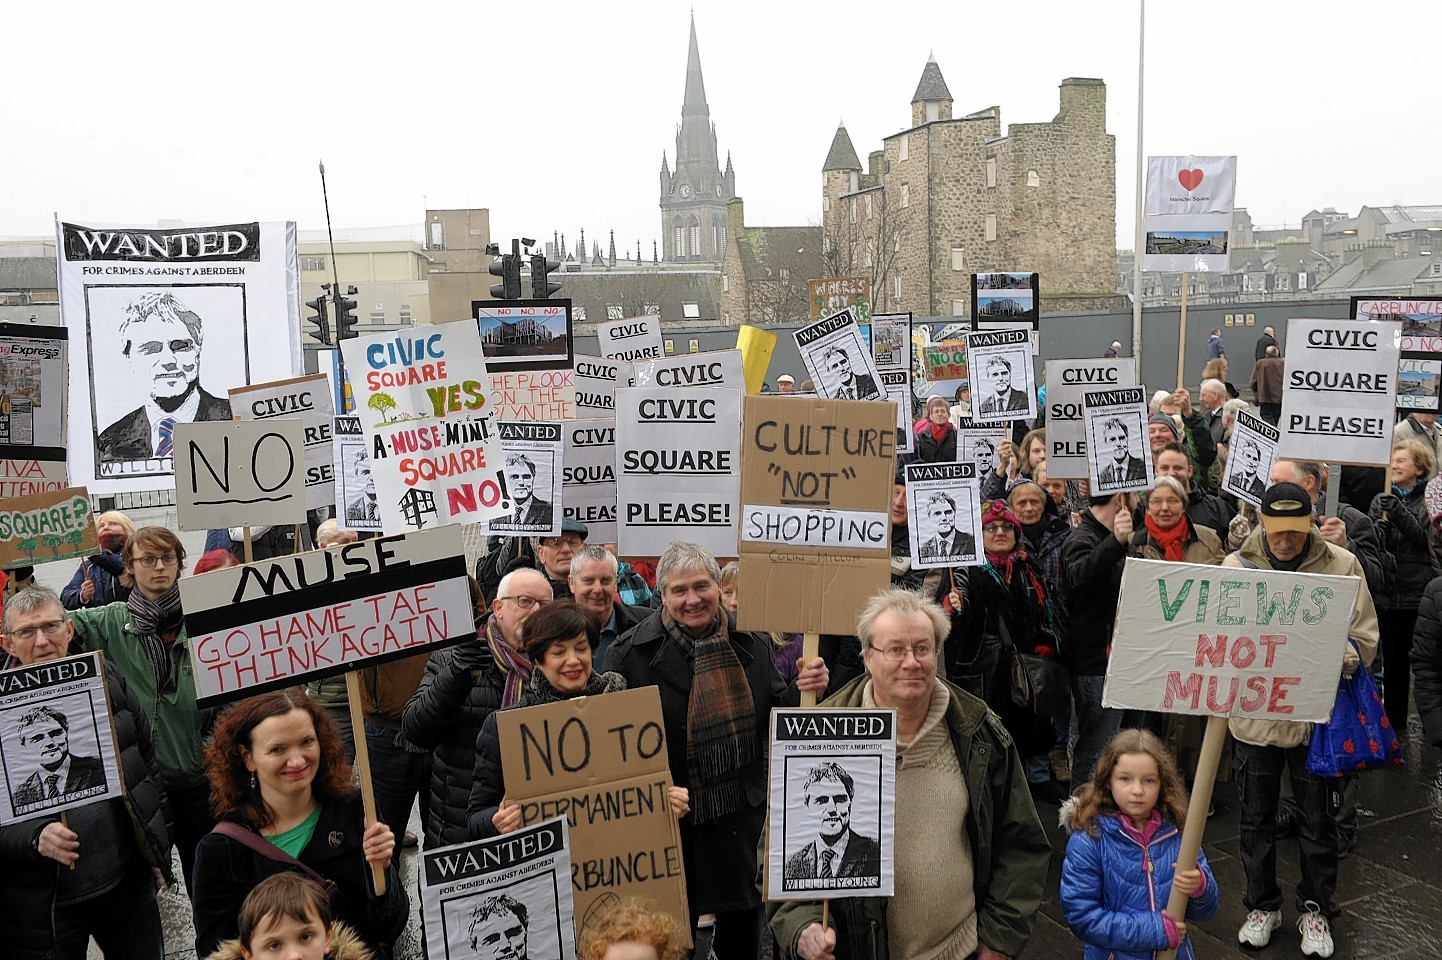 Protesters are demanding the current proposals are scrapped